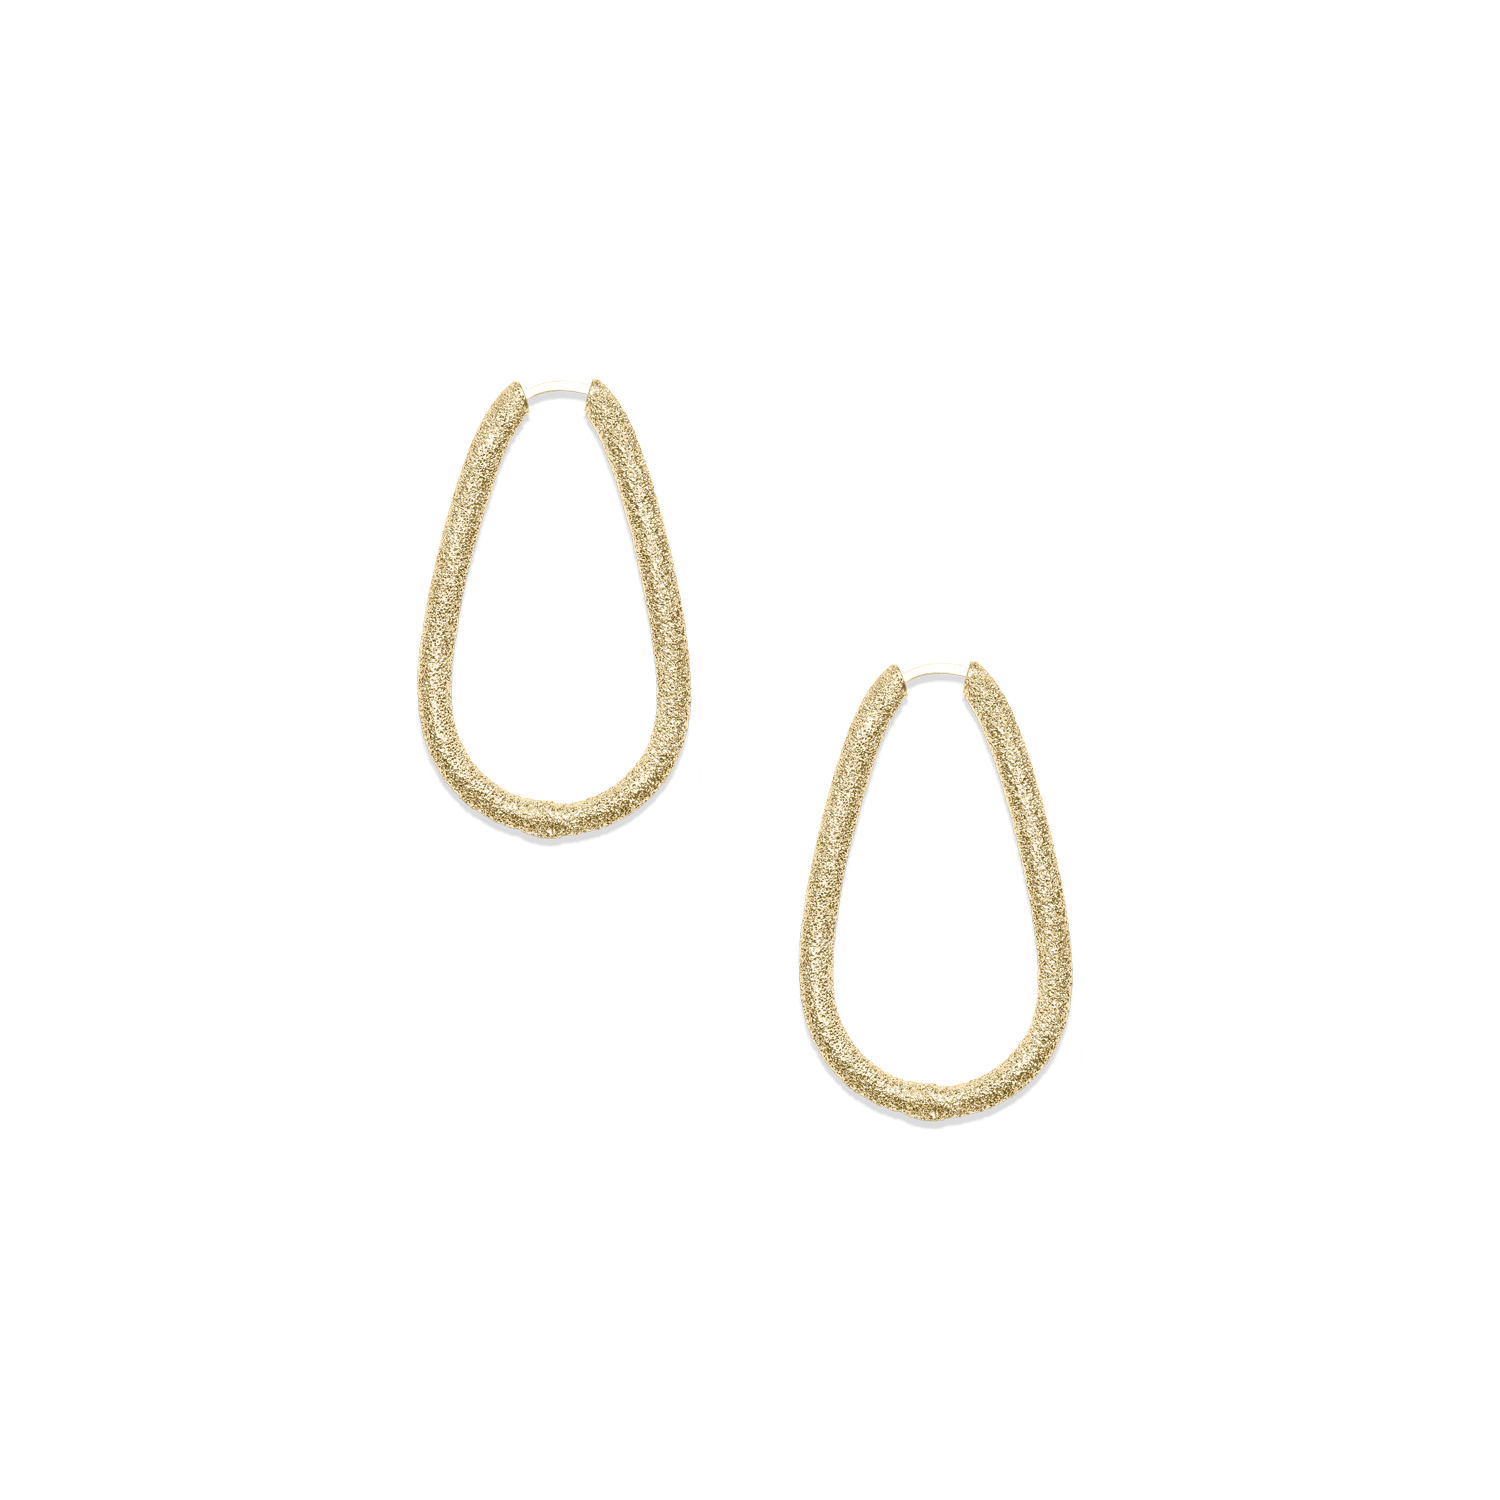 Small drop shaped hoop earrings in yellow gold